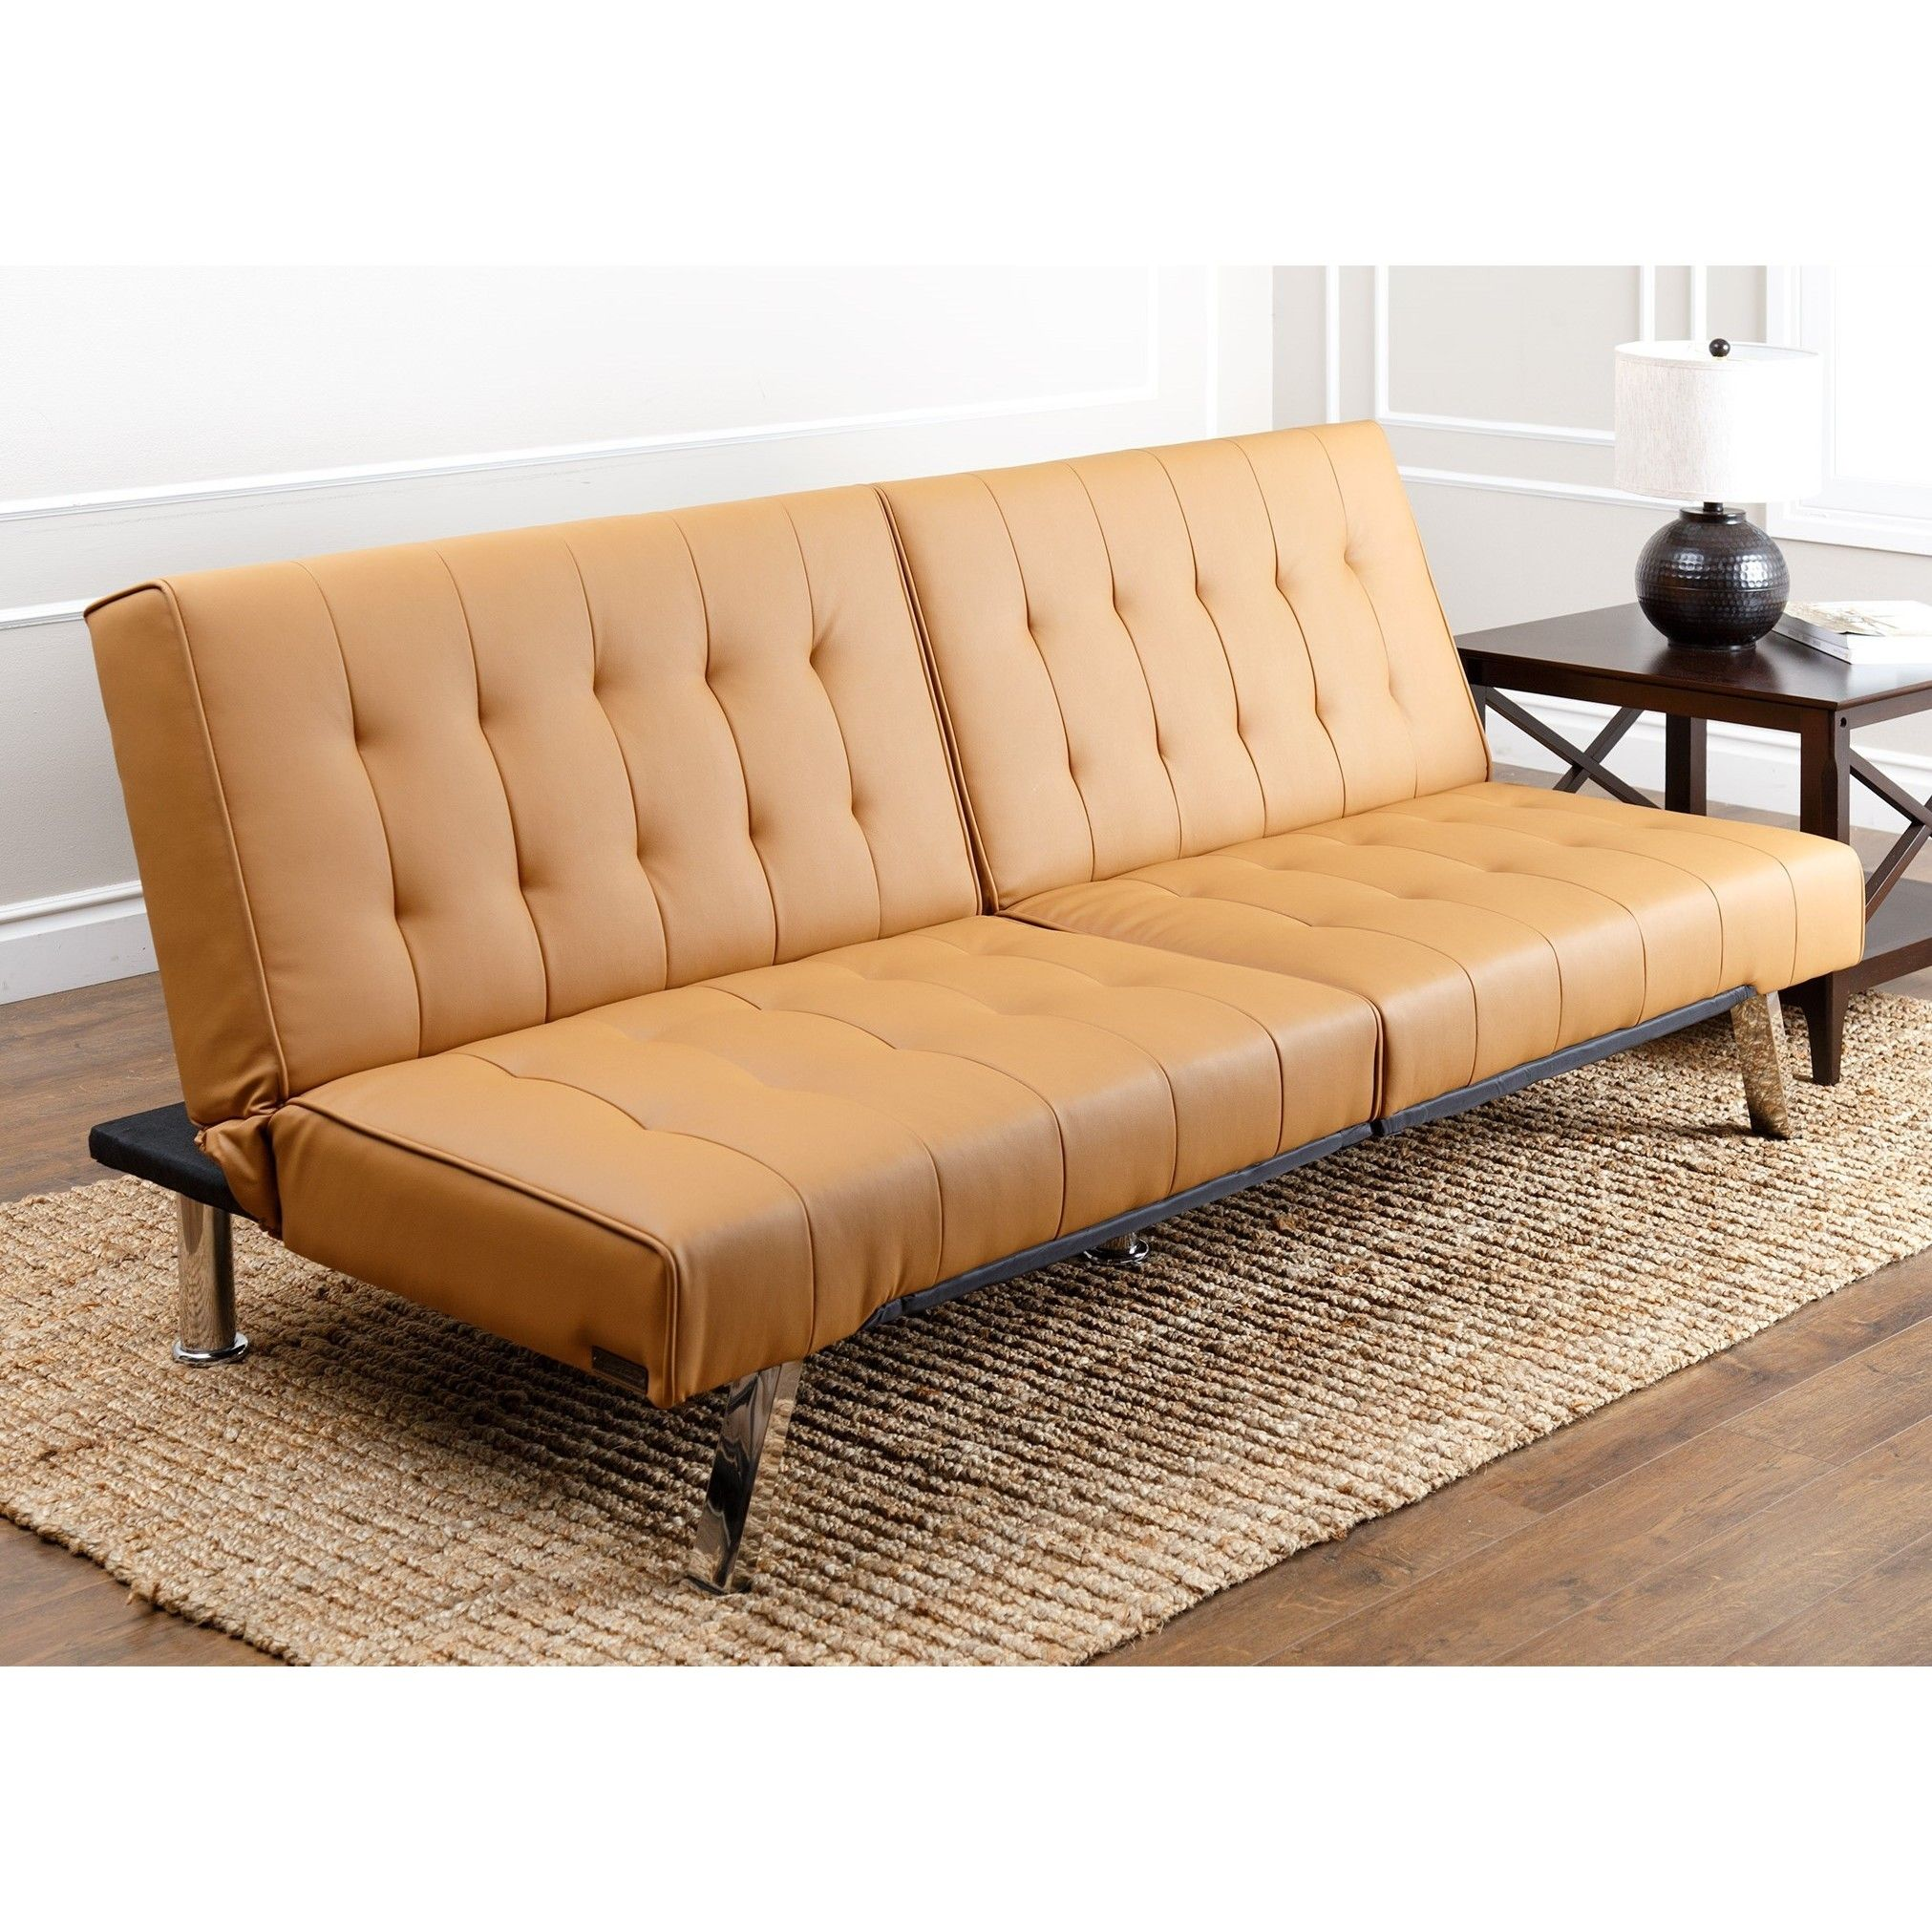 The Rich Toned Leather Upholstery Of This Futon Sofa Establishes